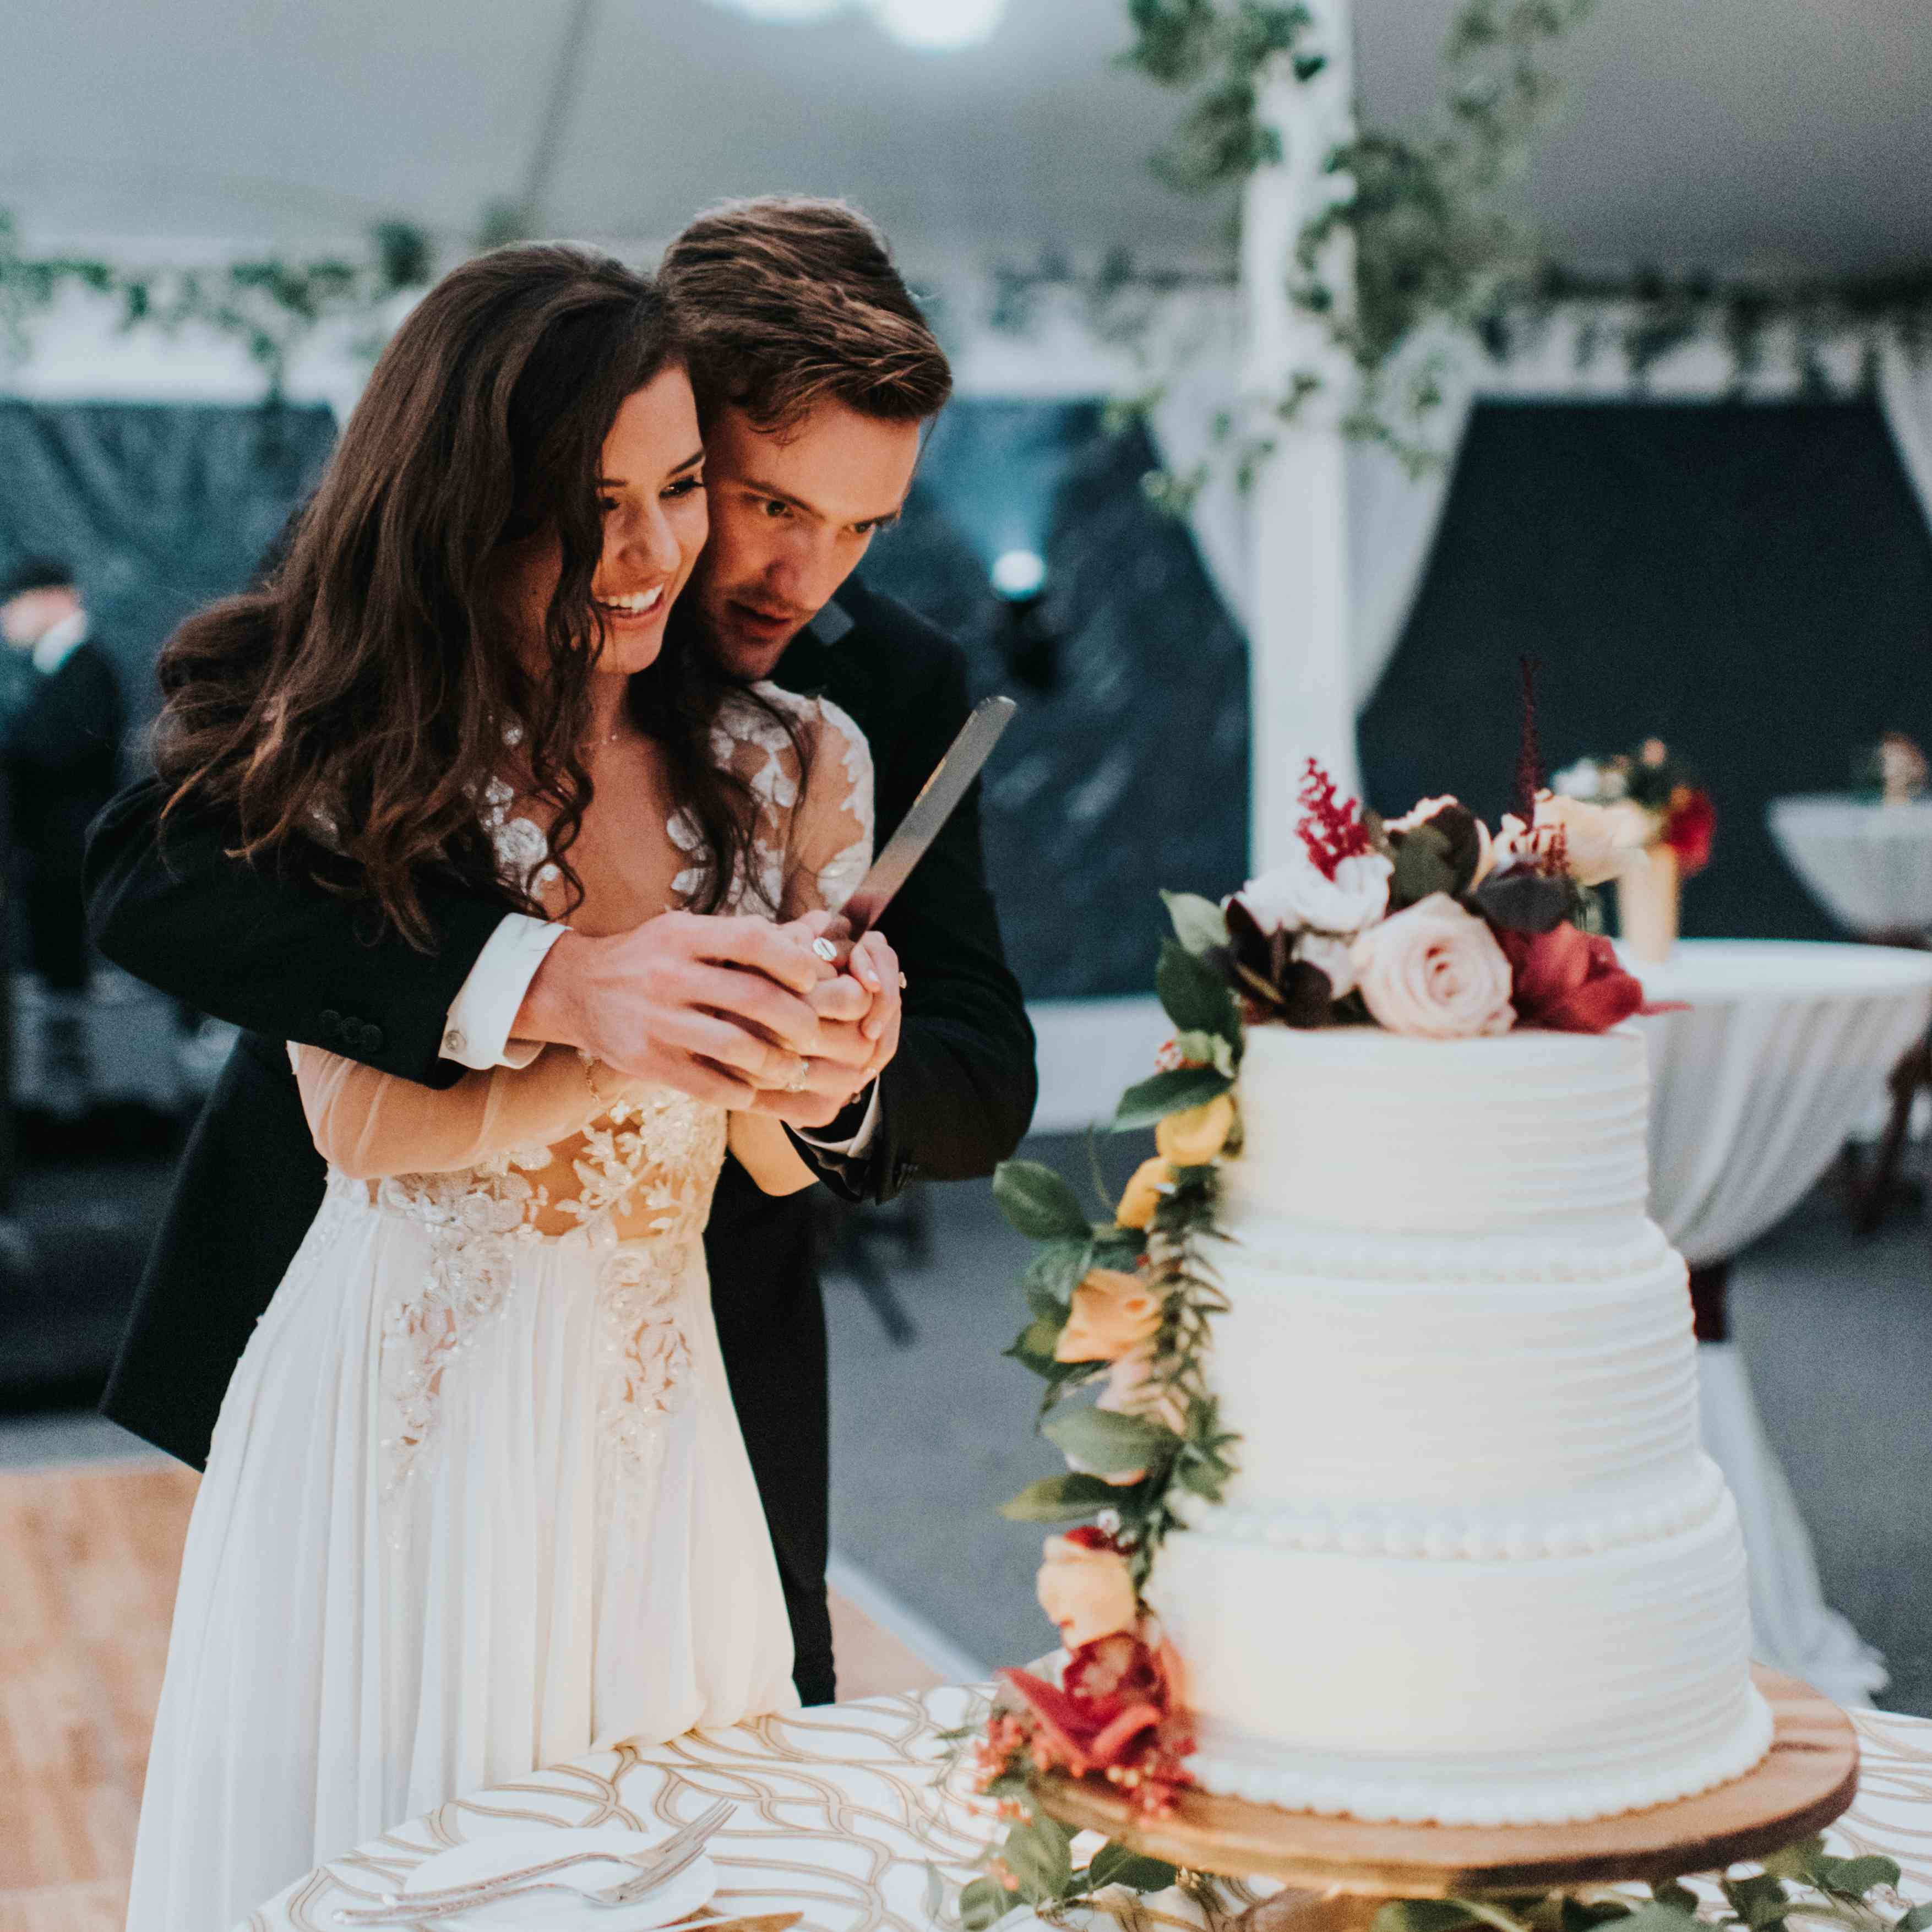 personalized michigan wedding, bride and groom cutting cake